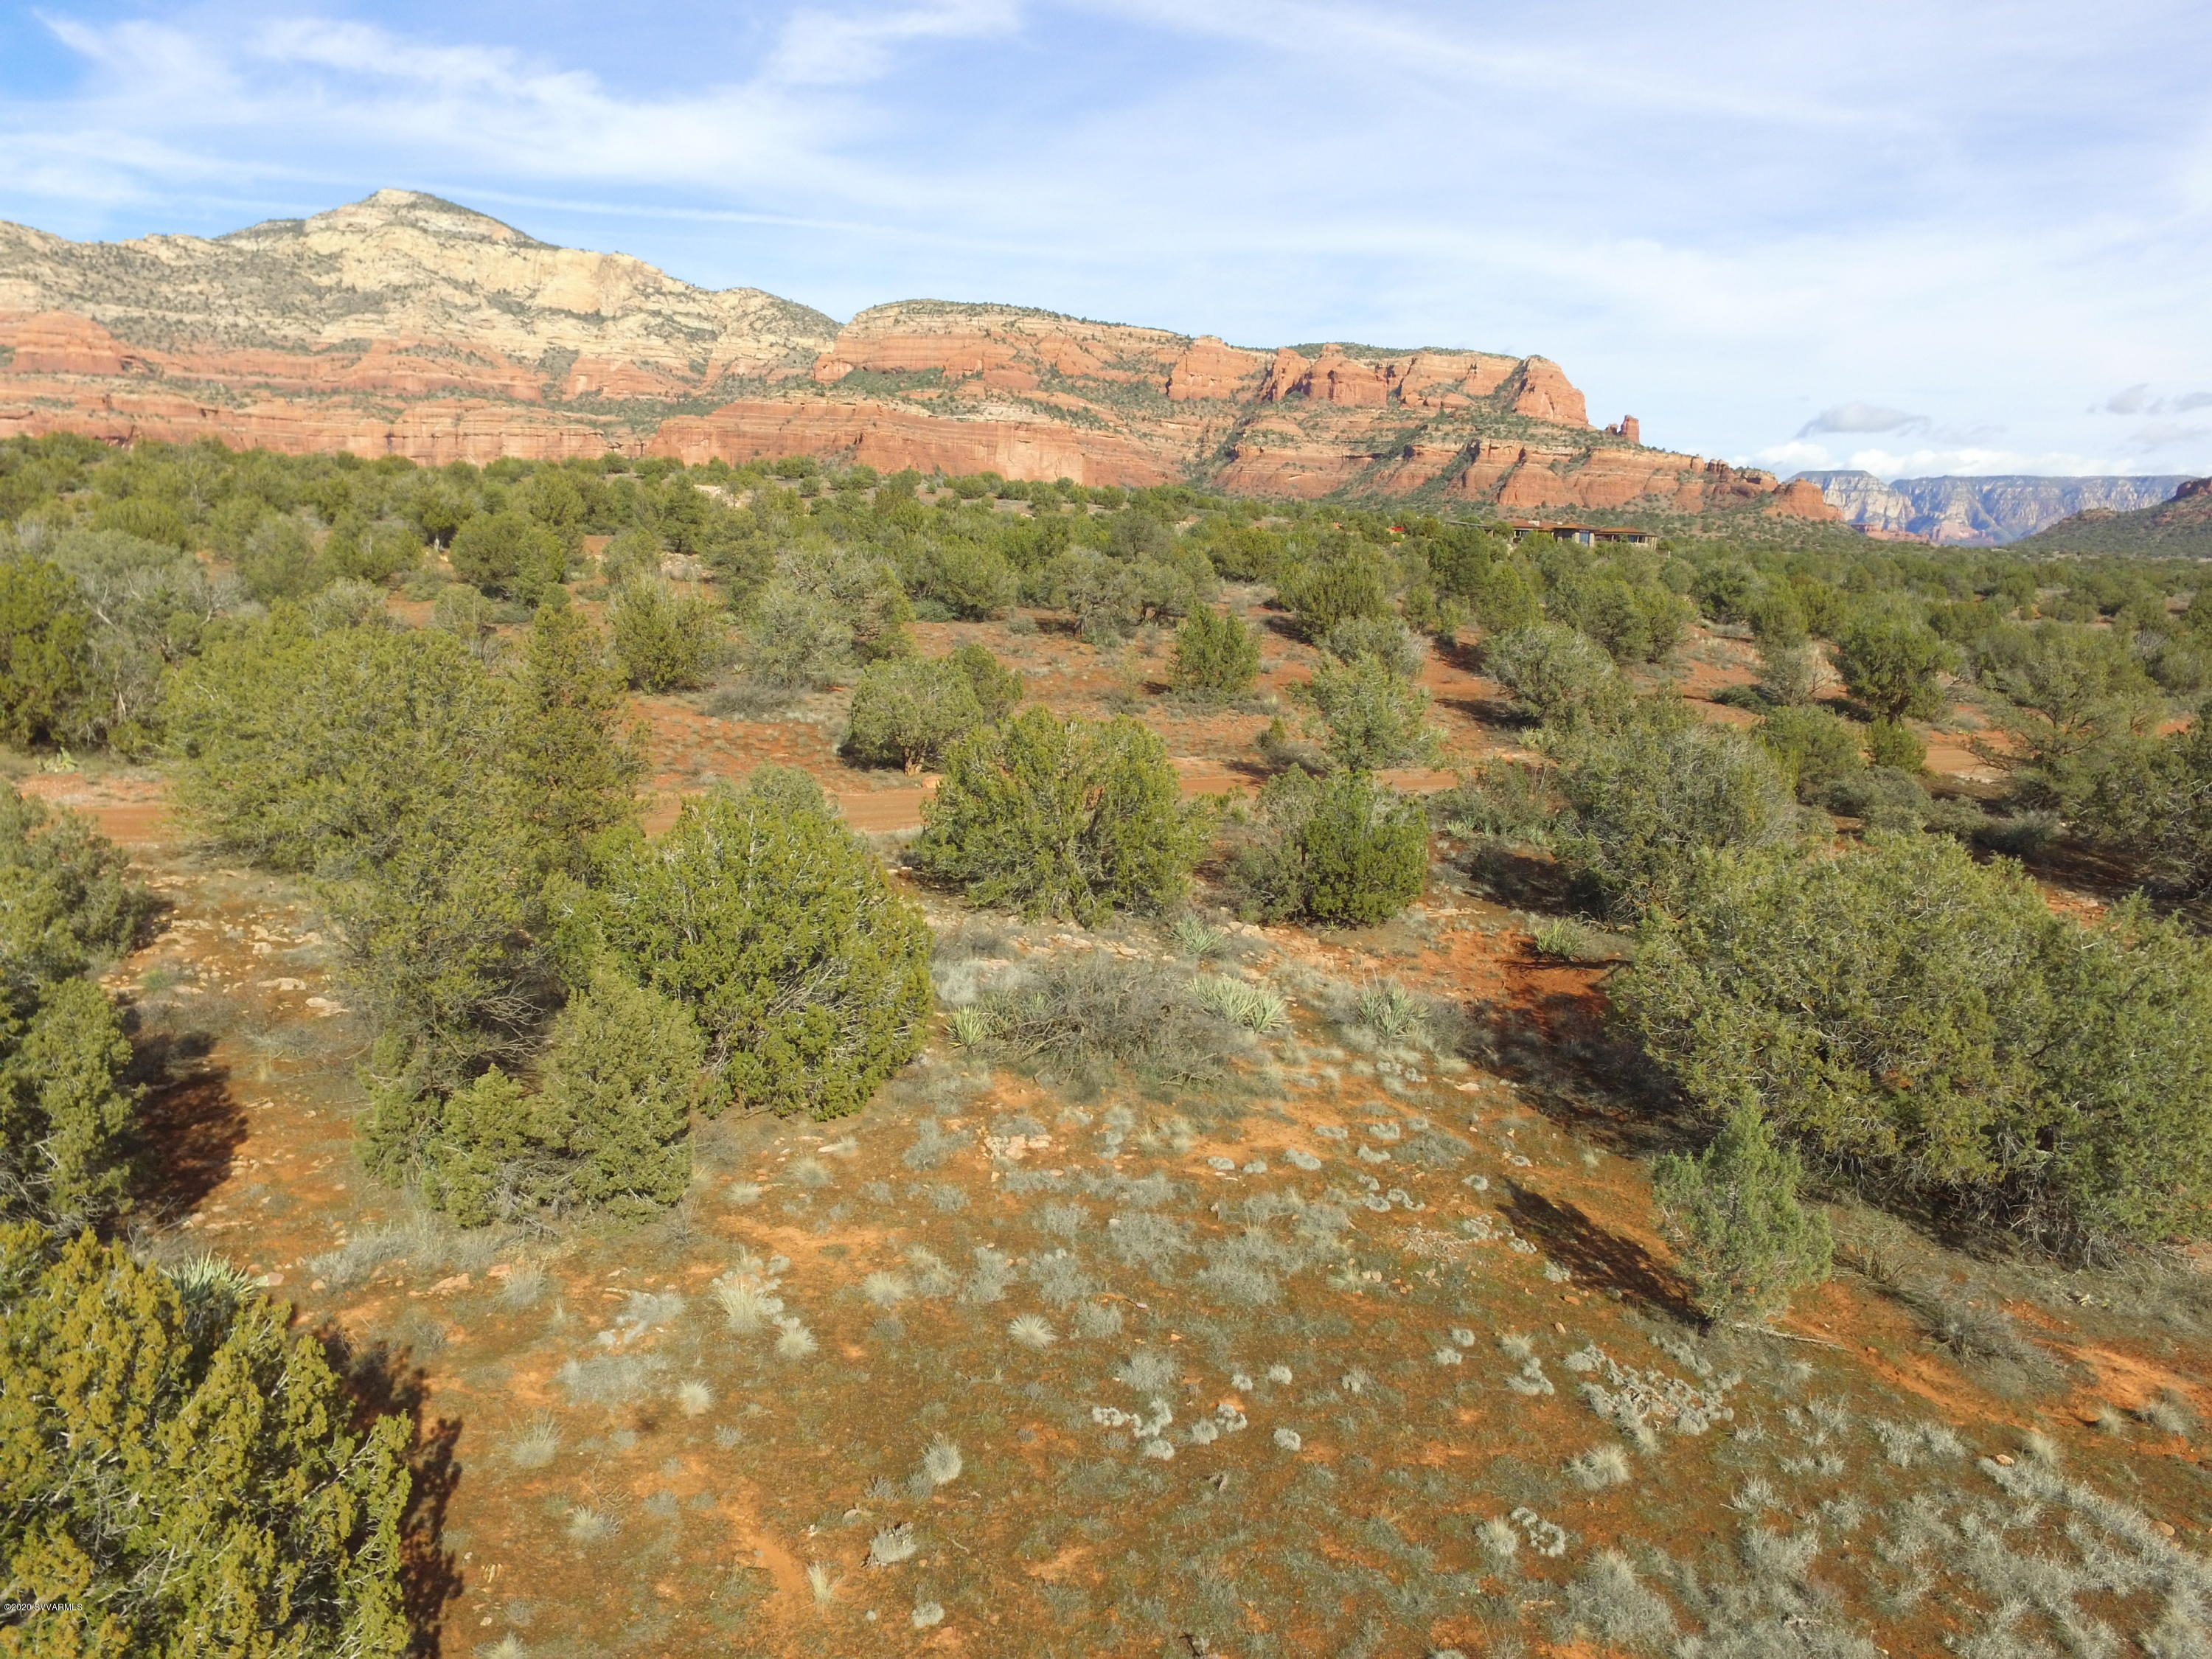 255 Bear Mountain Sedona, AZ 86336